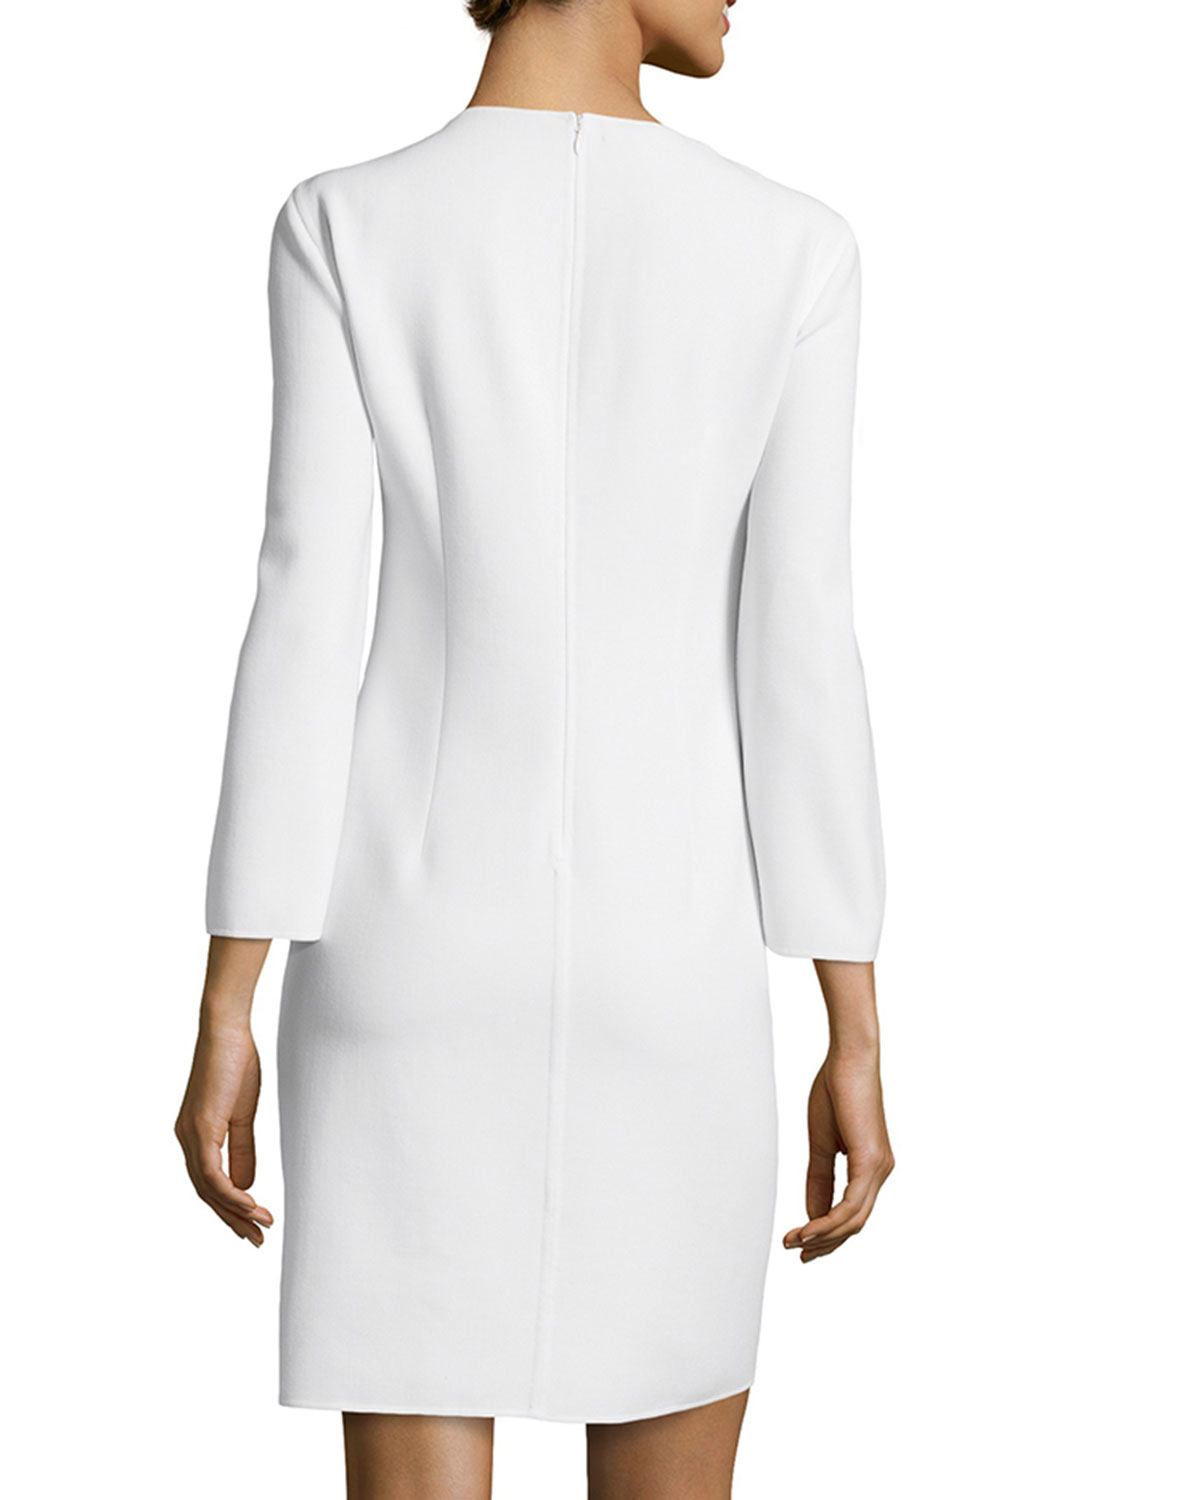 Images of White Tunic Dress - Reikian